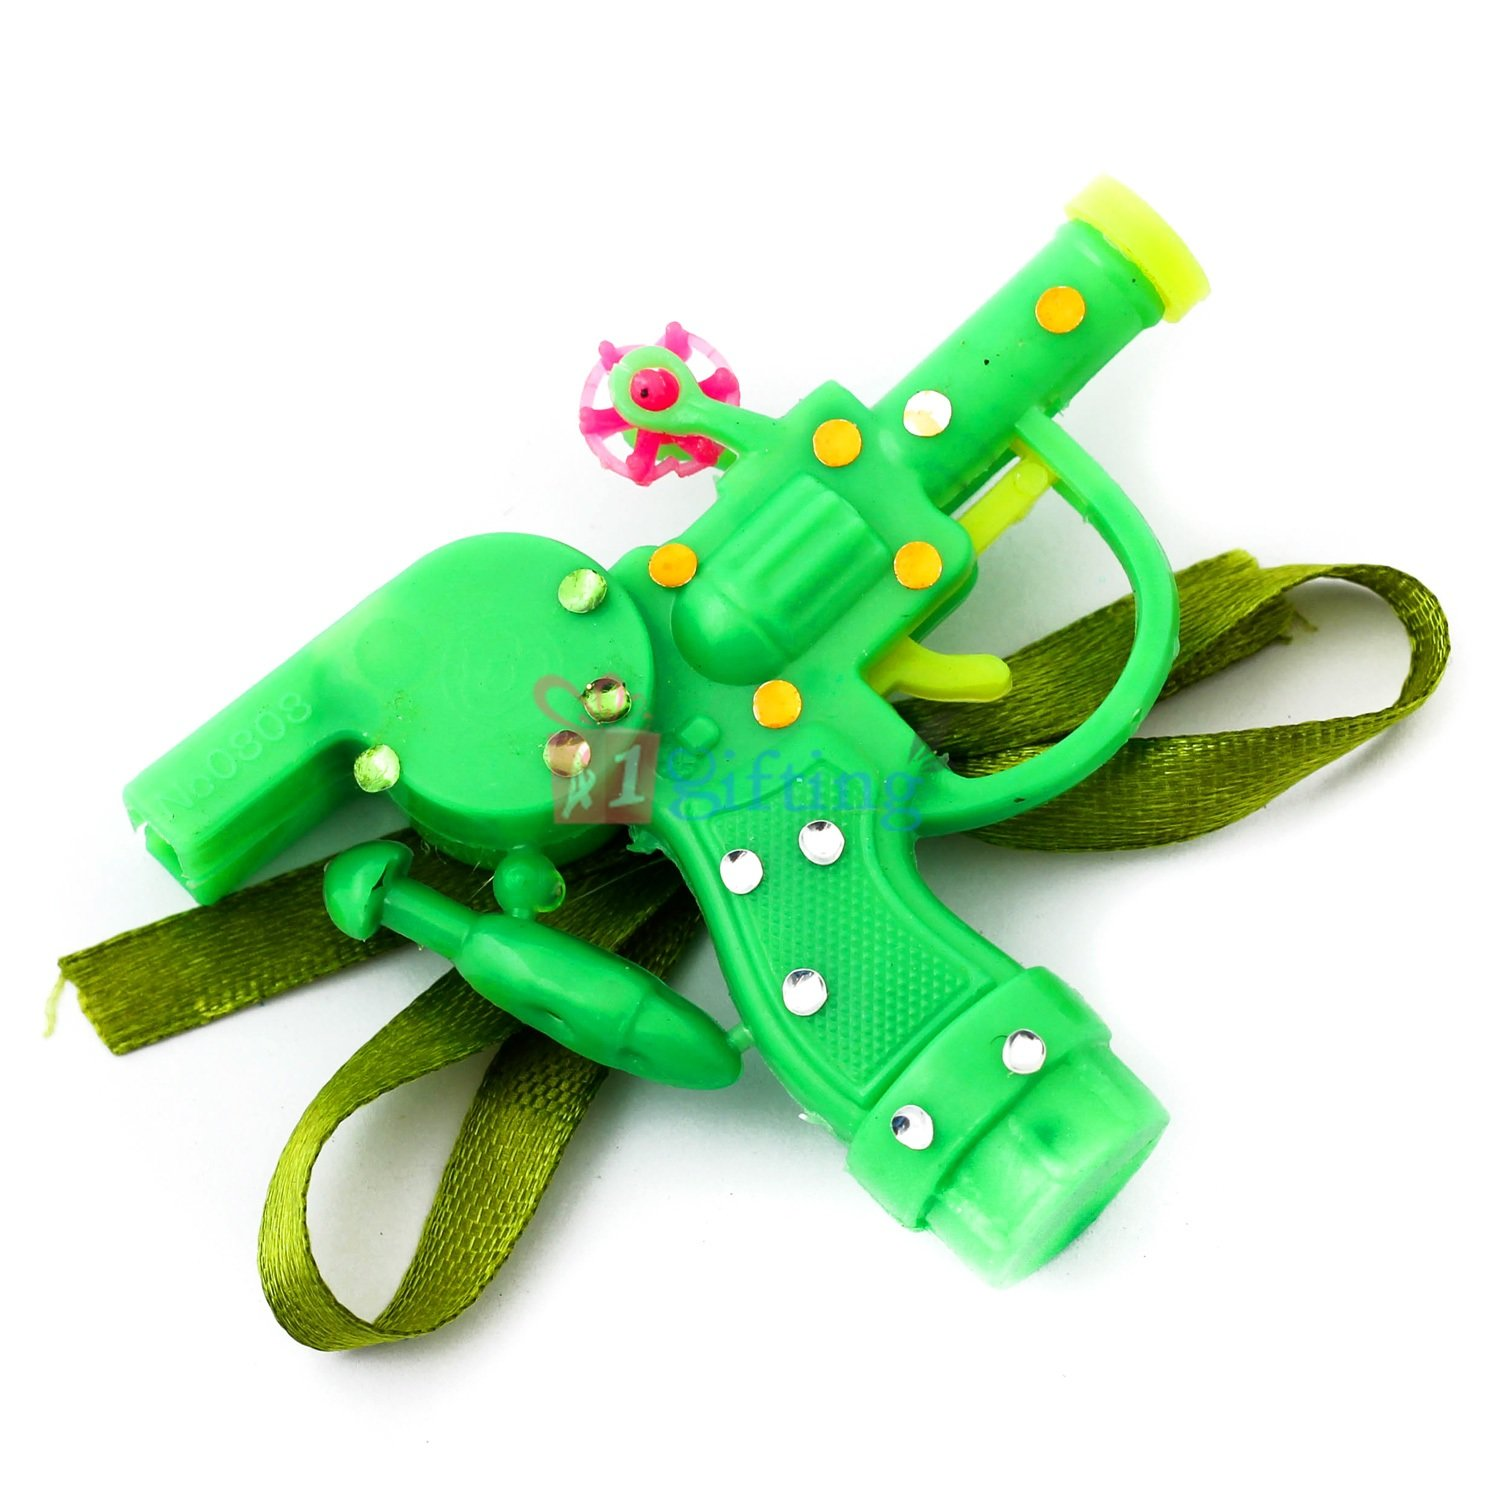 Natural green color plastic gun and whistle studded with crystals